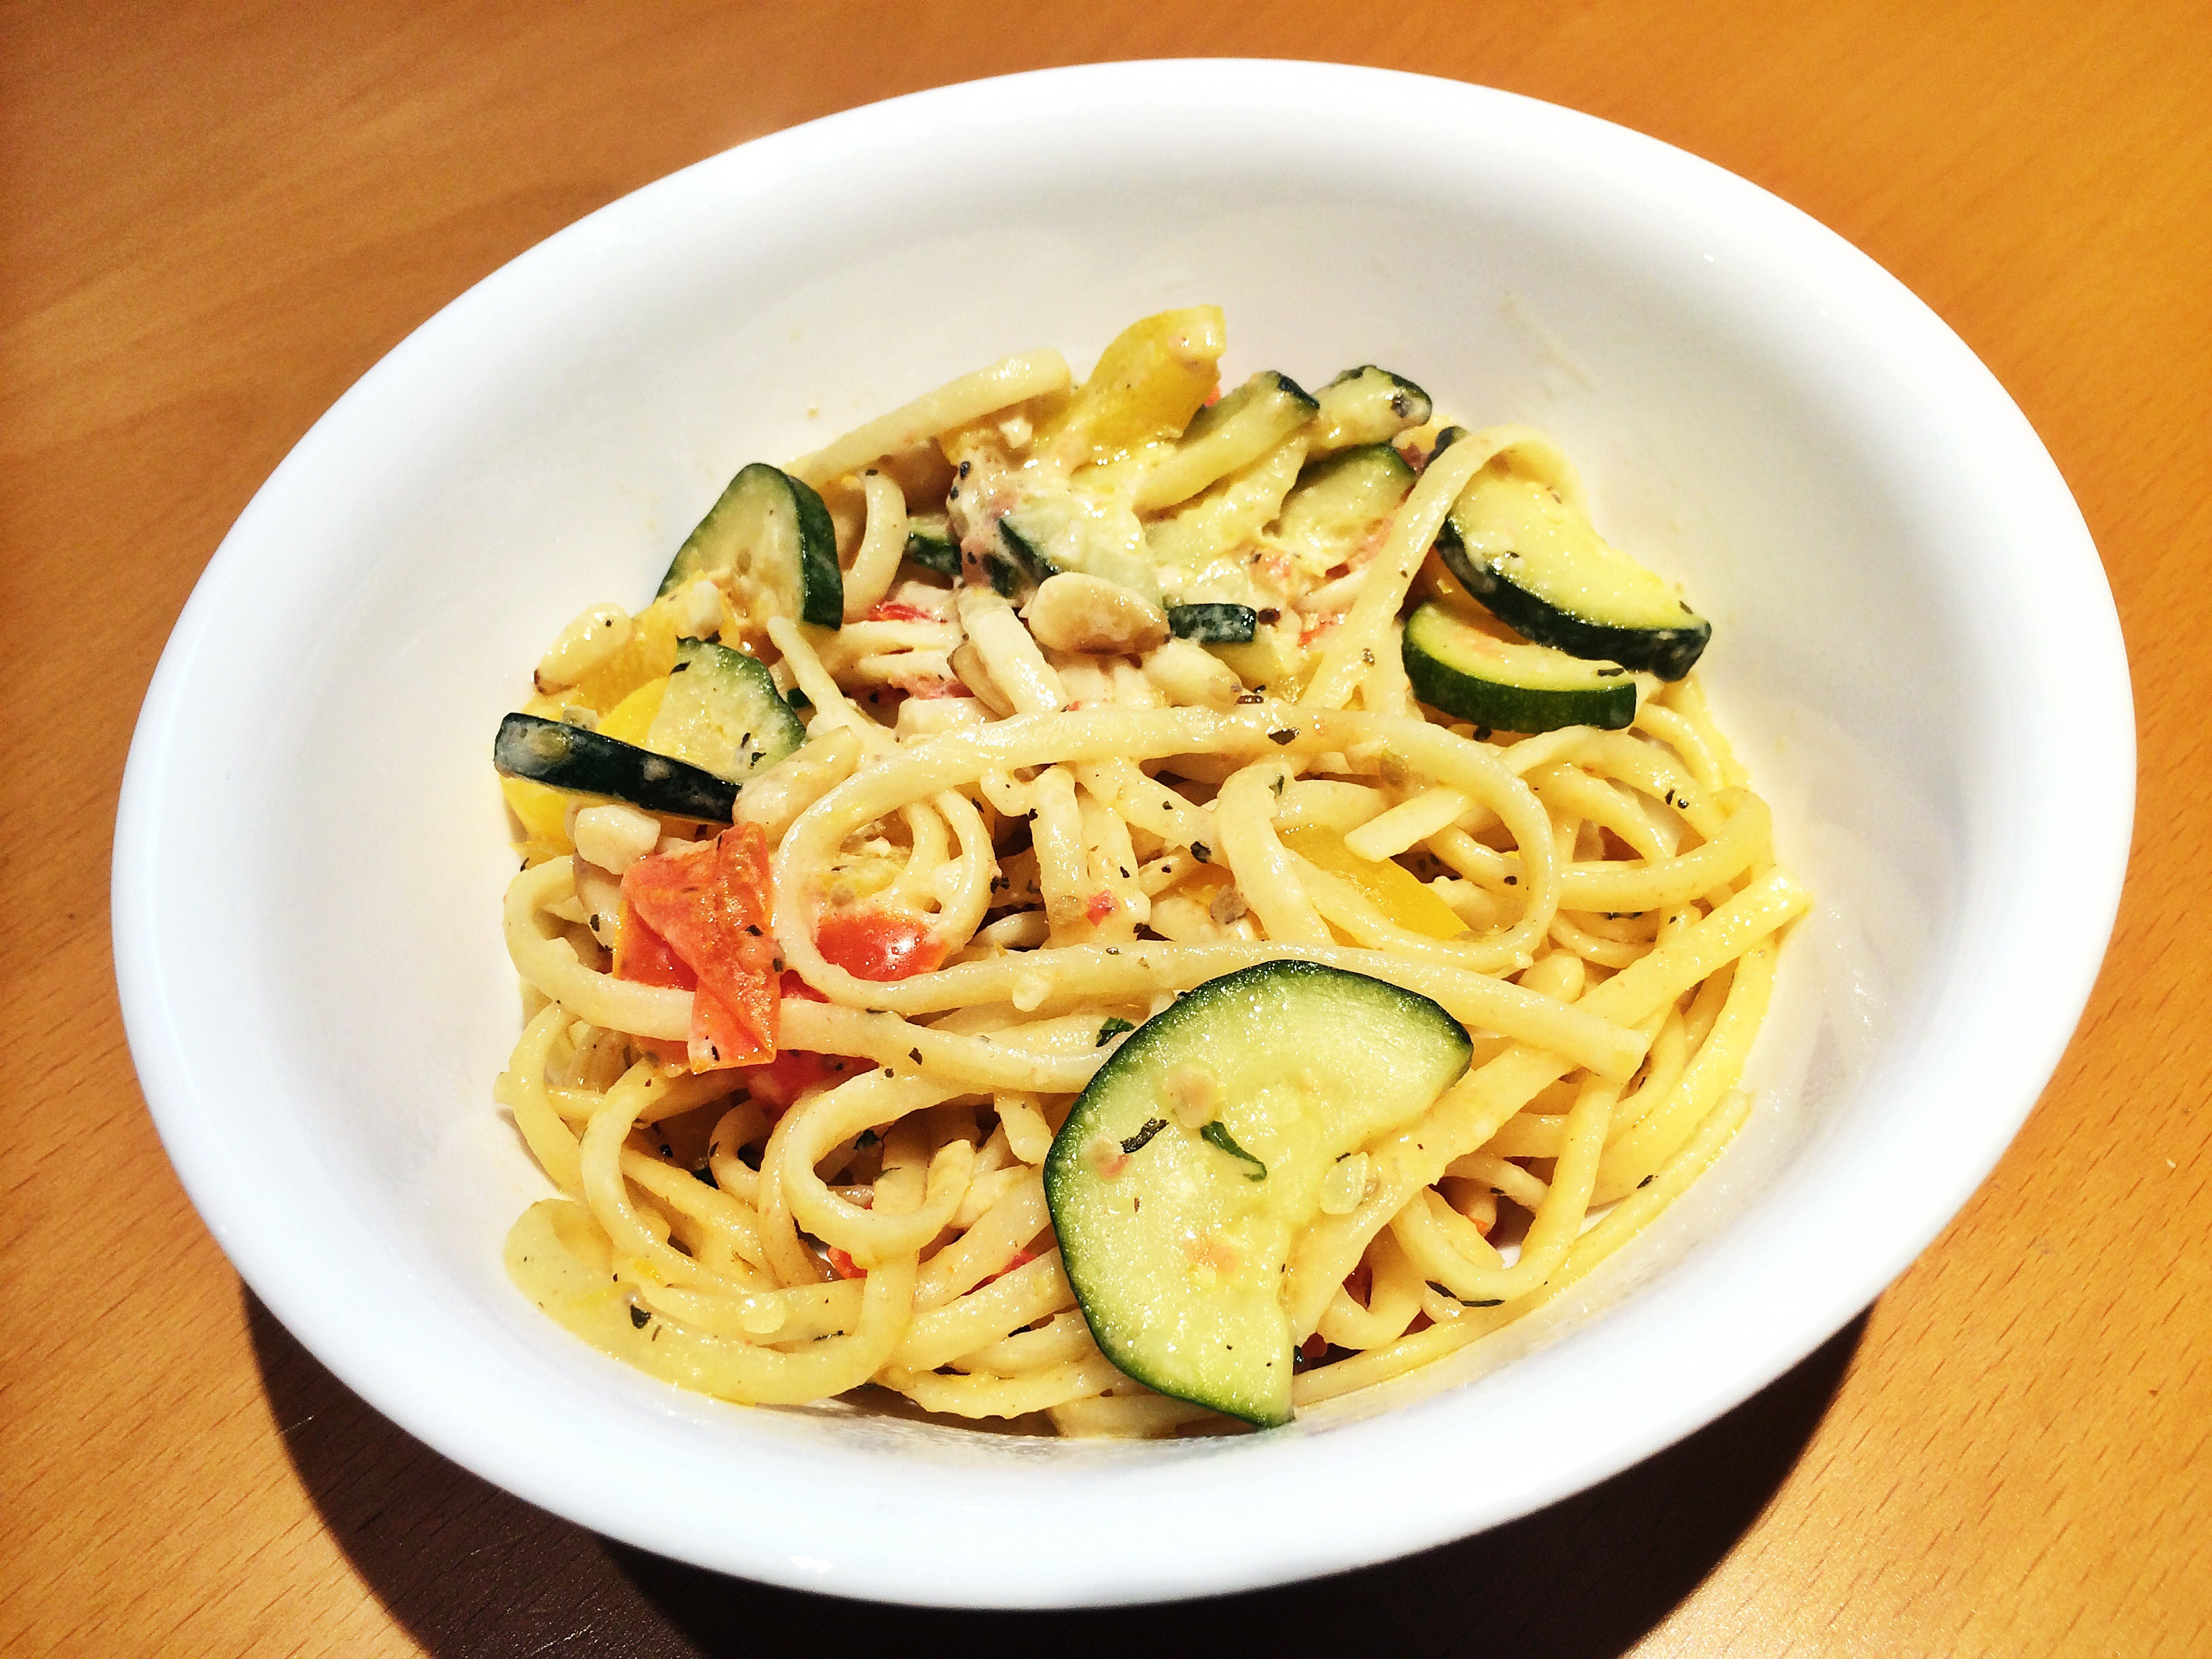 A bowl of veggie pasta